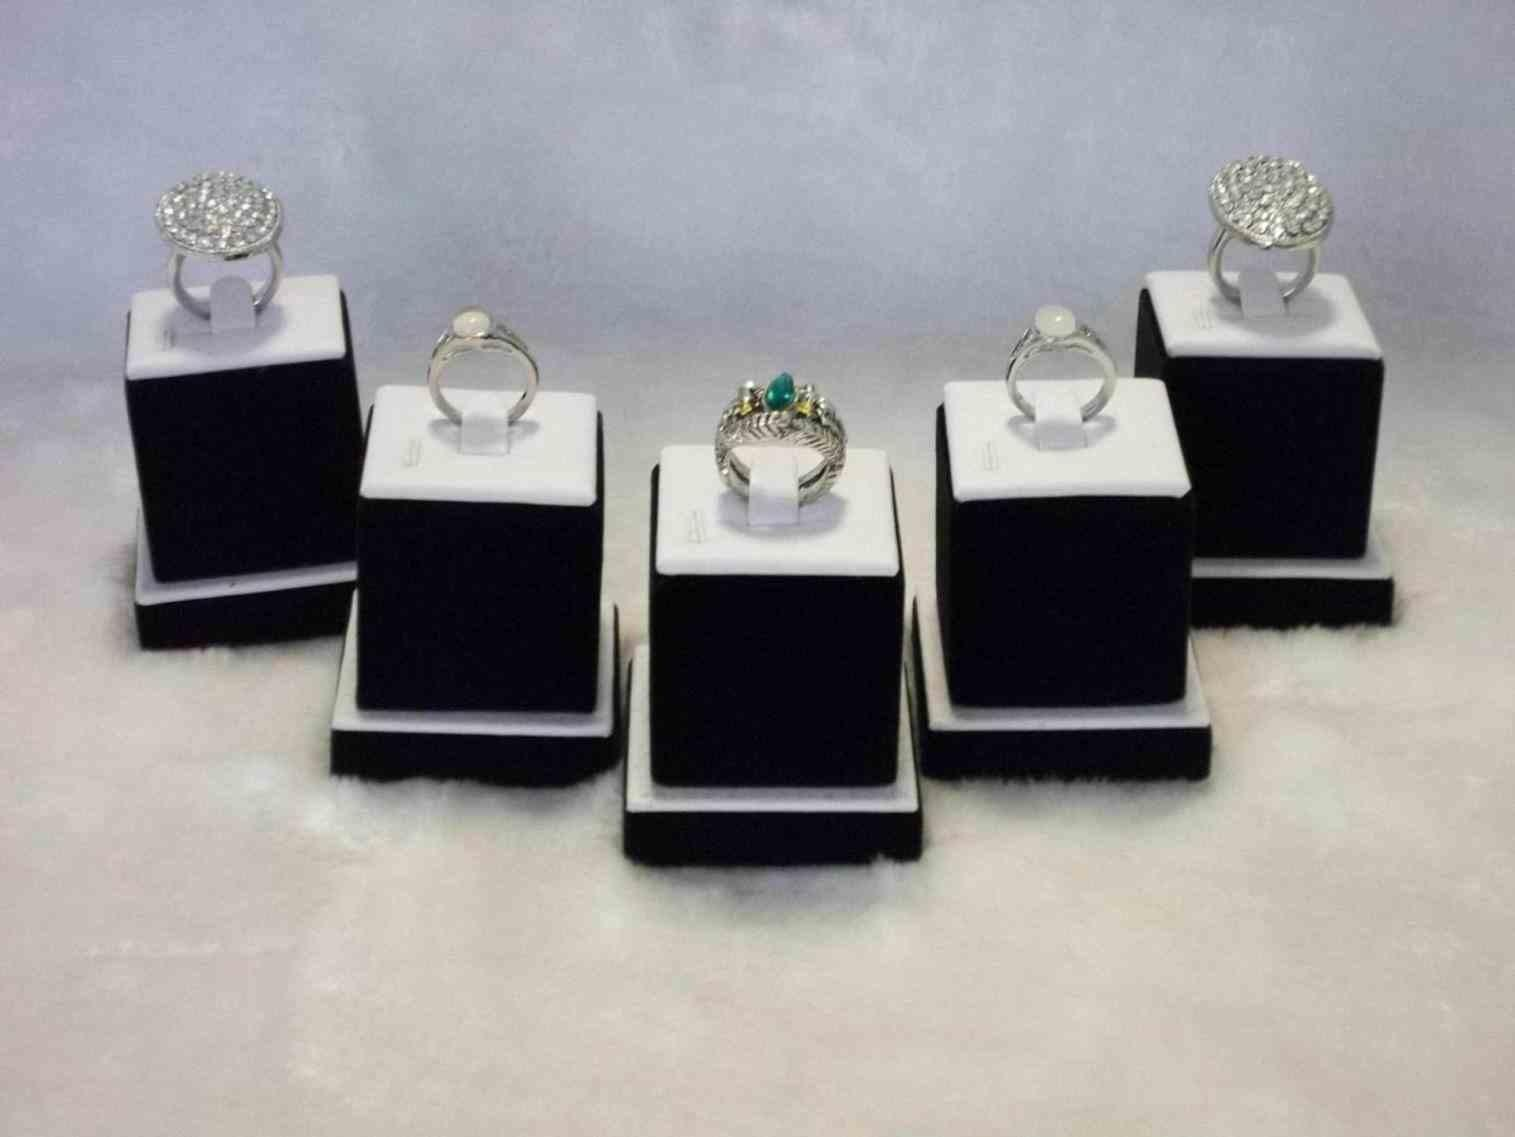 Jewelry Store Ring Display Siudy